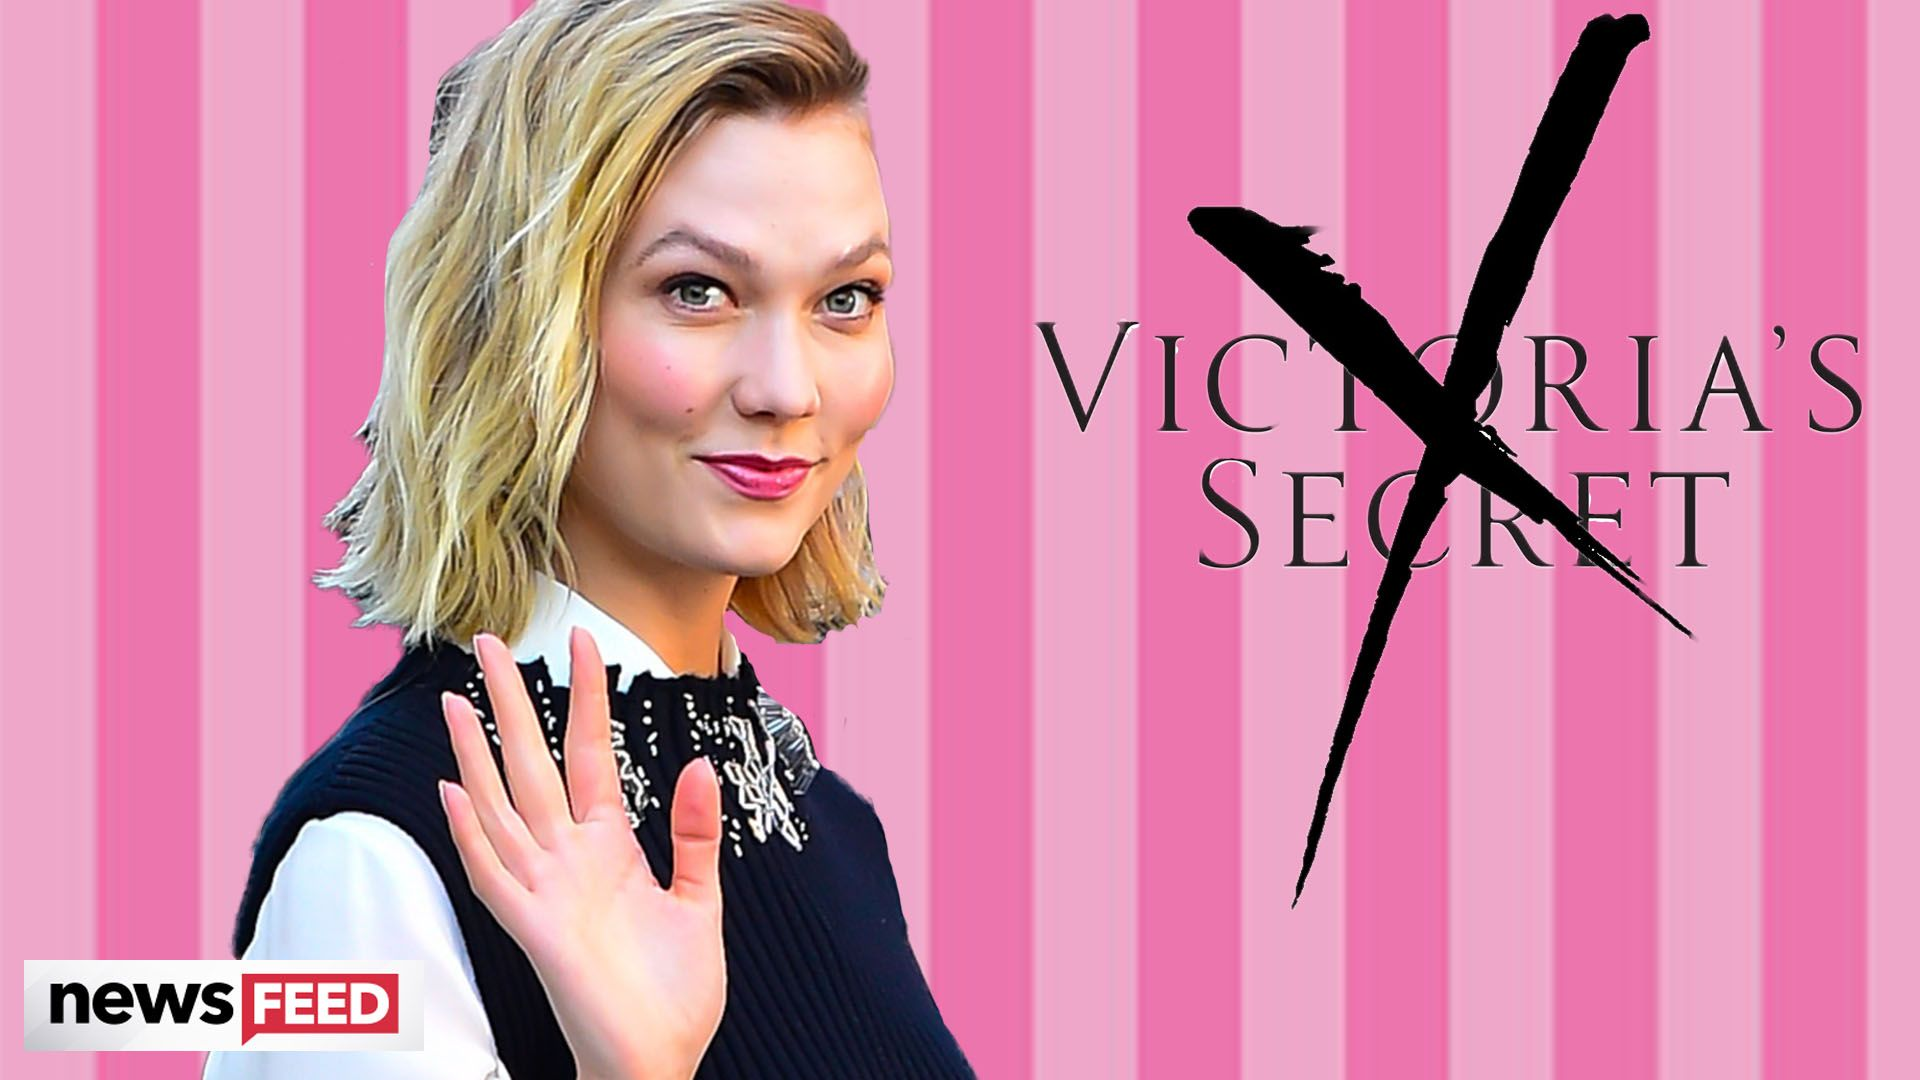 Victoria's Secret urged by models to protect from sexual harassment, assault, and trafficking